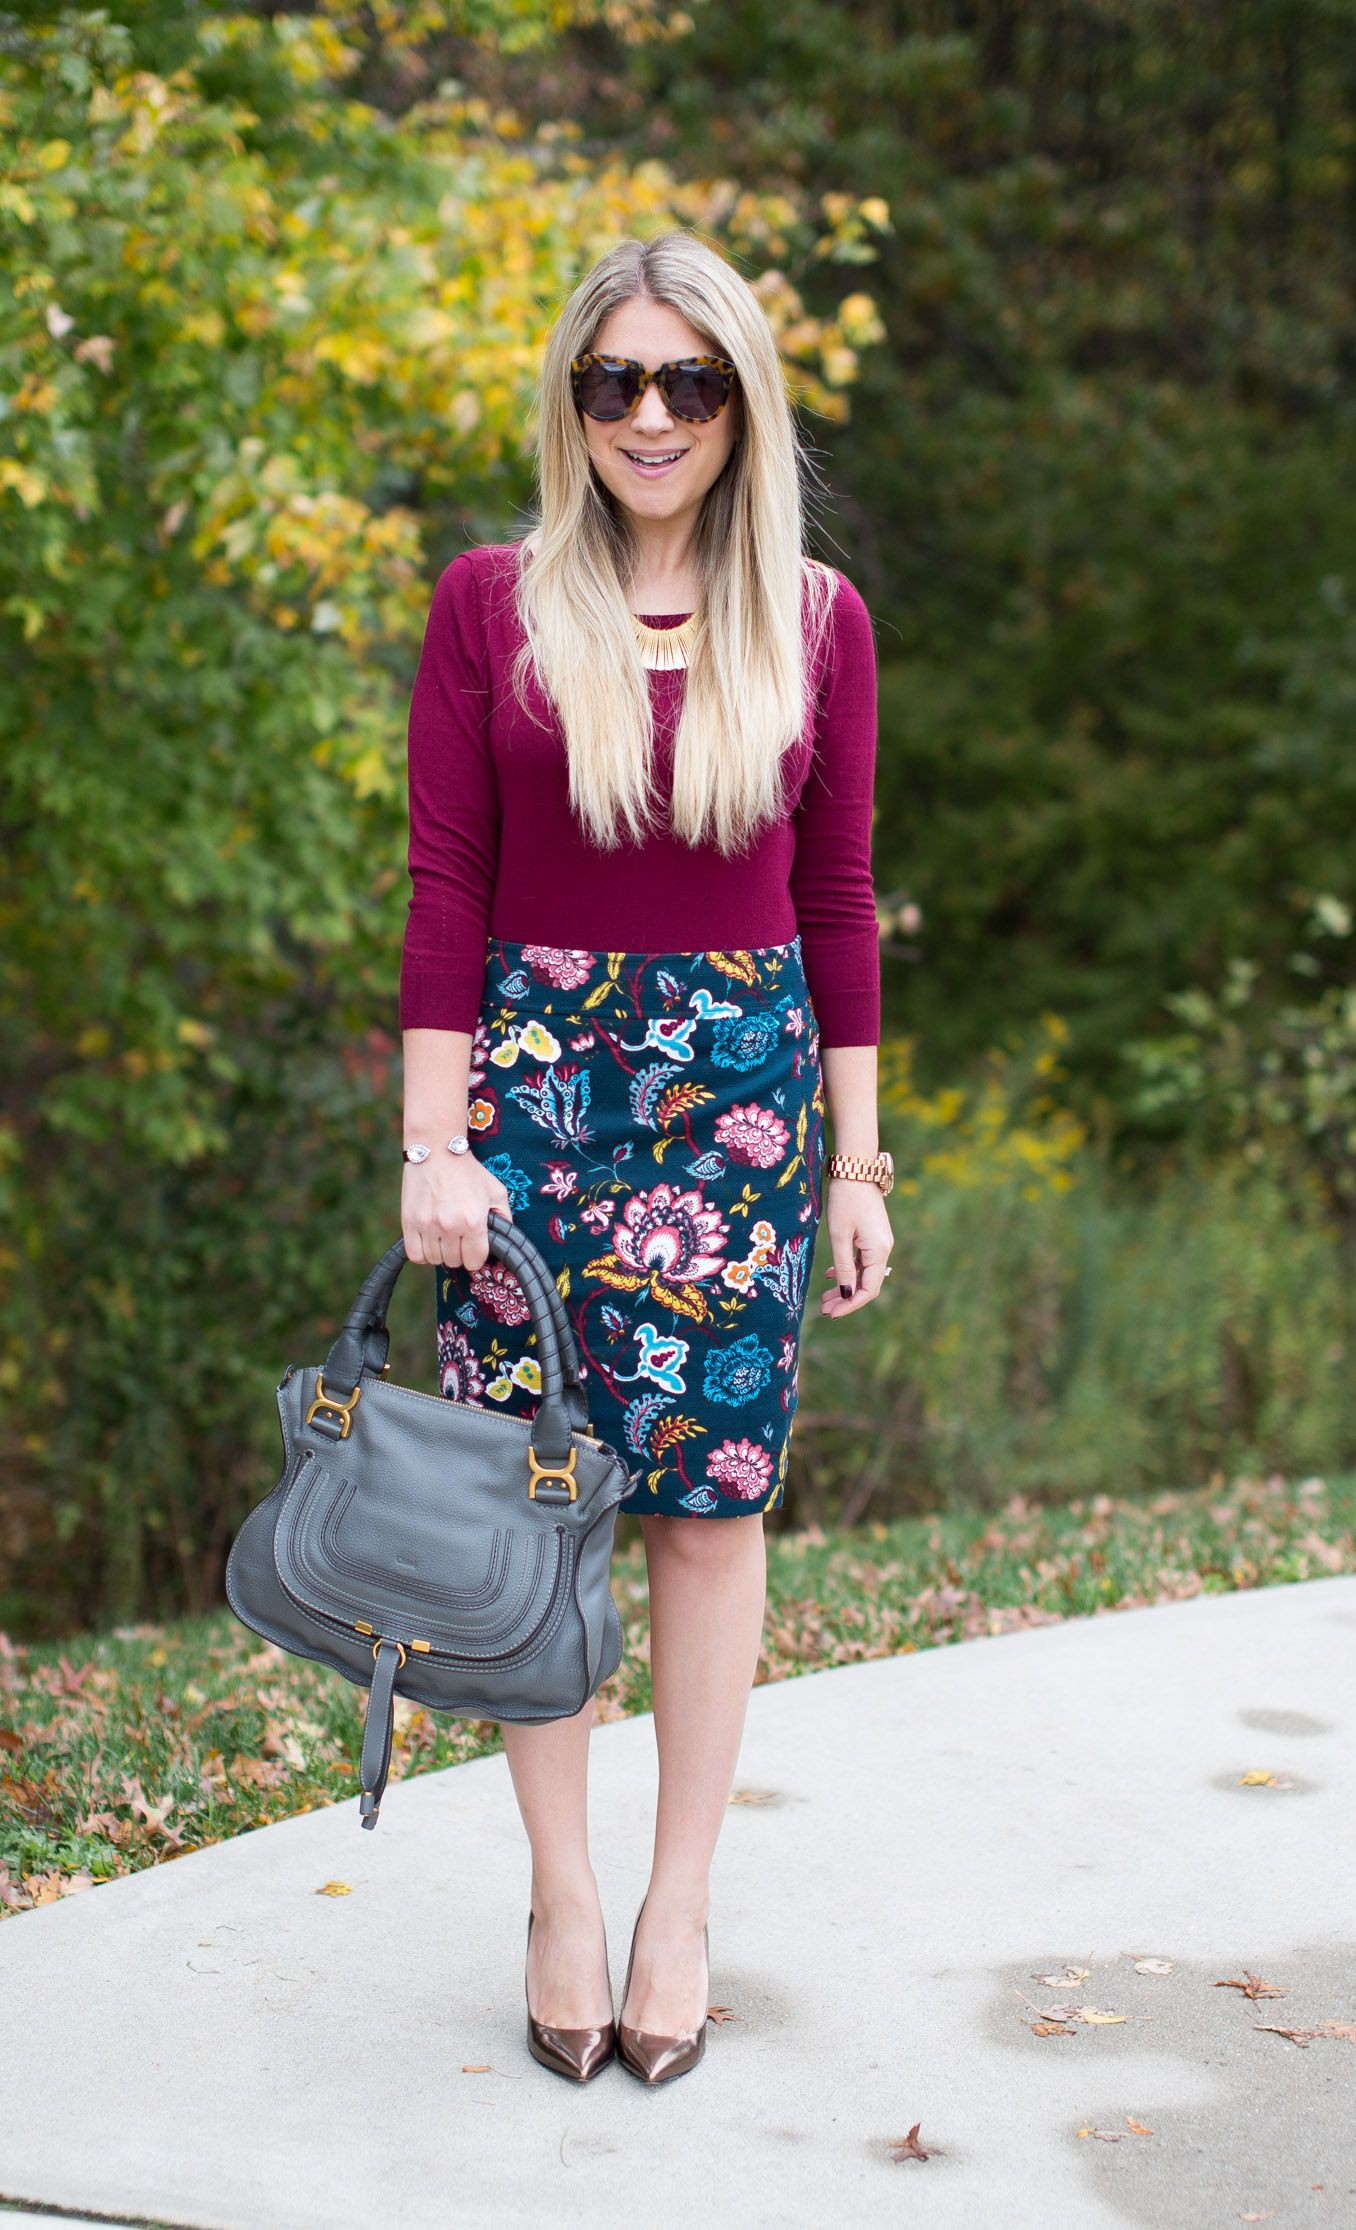 Magenta and purple colour outfit ideas 2020 with pencil skirt, shorts, jeans